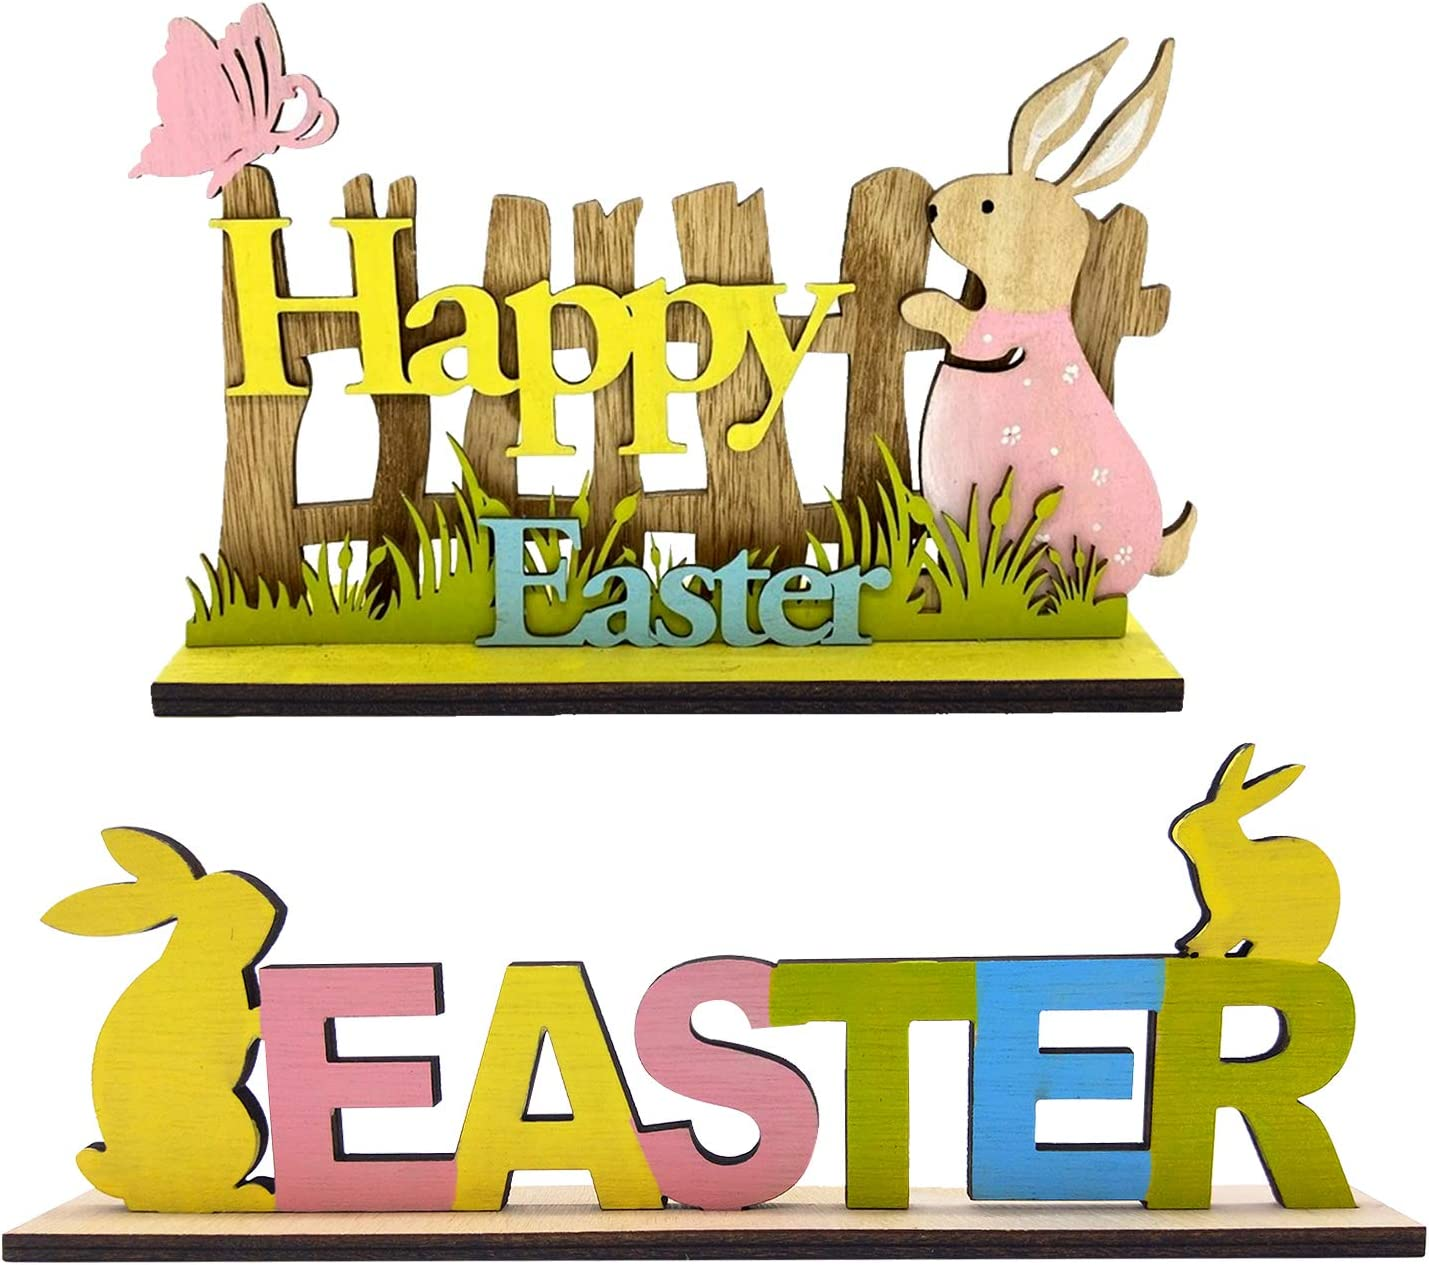 Sfcddtlg 2PCS Easter Tabletop Decoration Signs-Easter Table Centerpieces Wooden Decorations with Bunny for Spring Holiday Easter Dinner Party Coffee (2PCS)